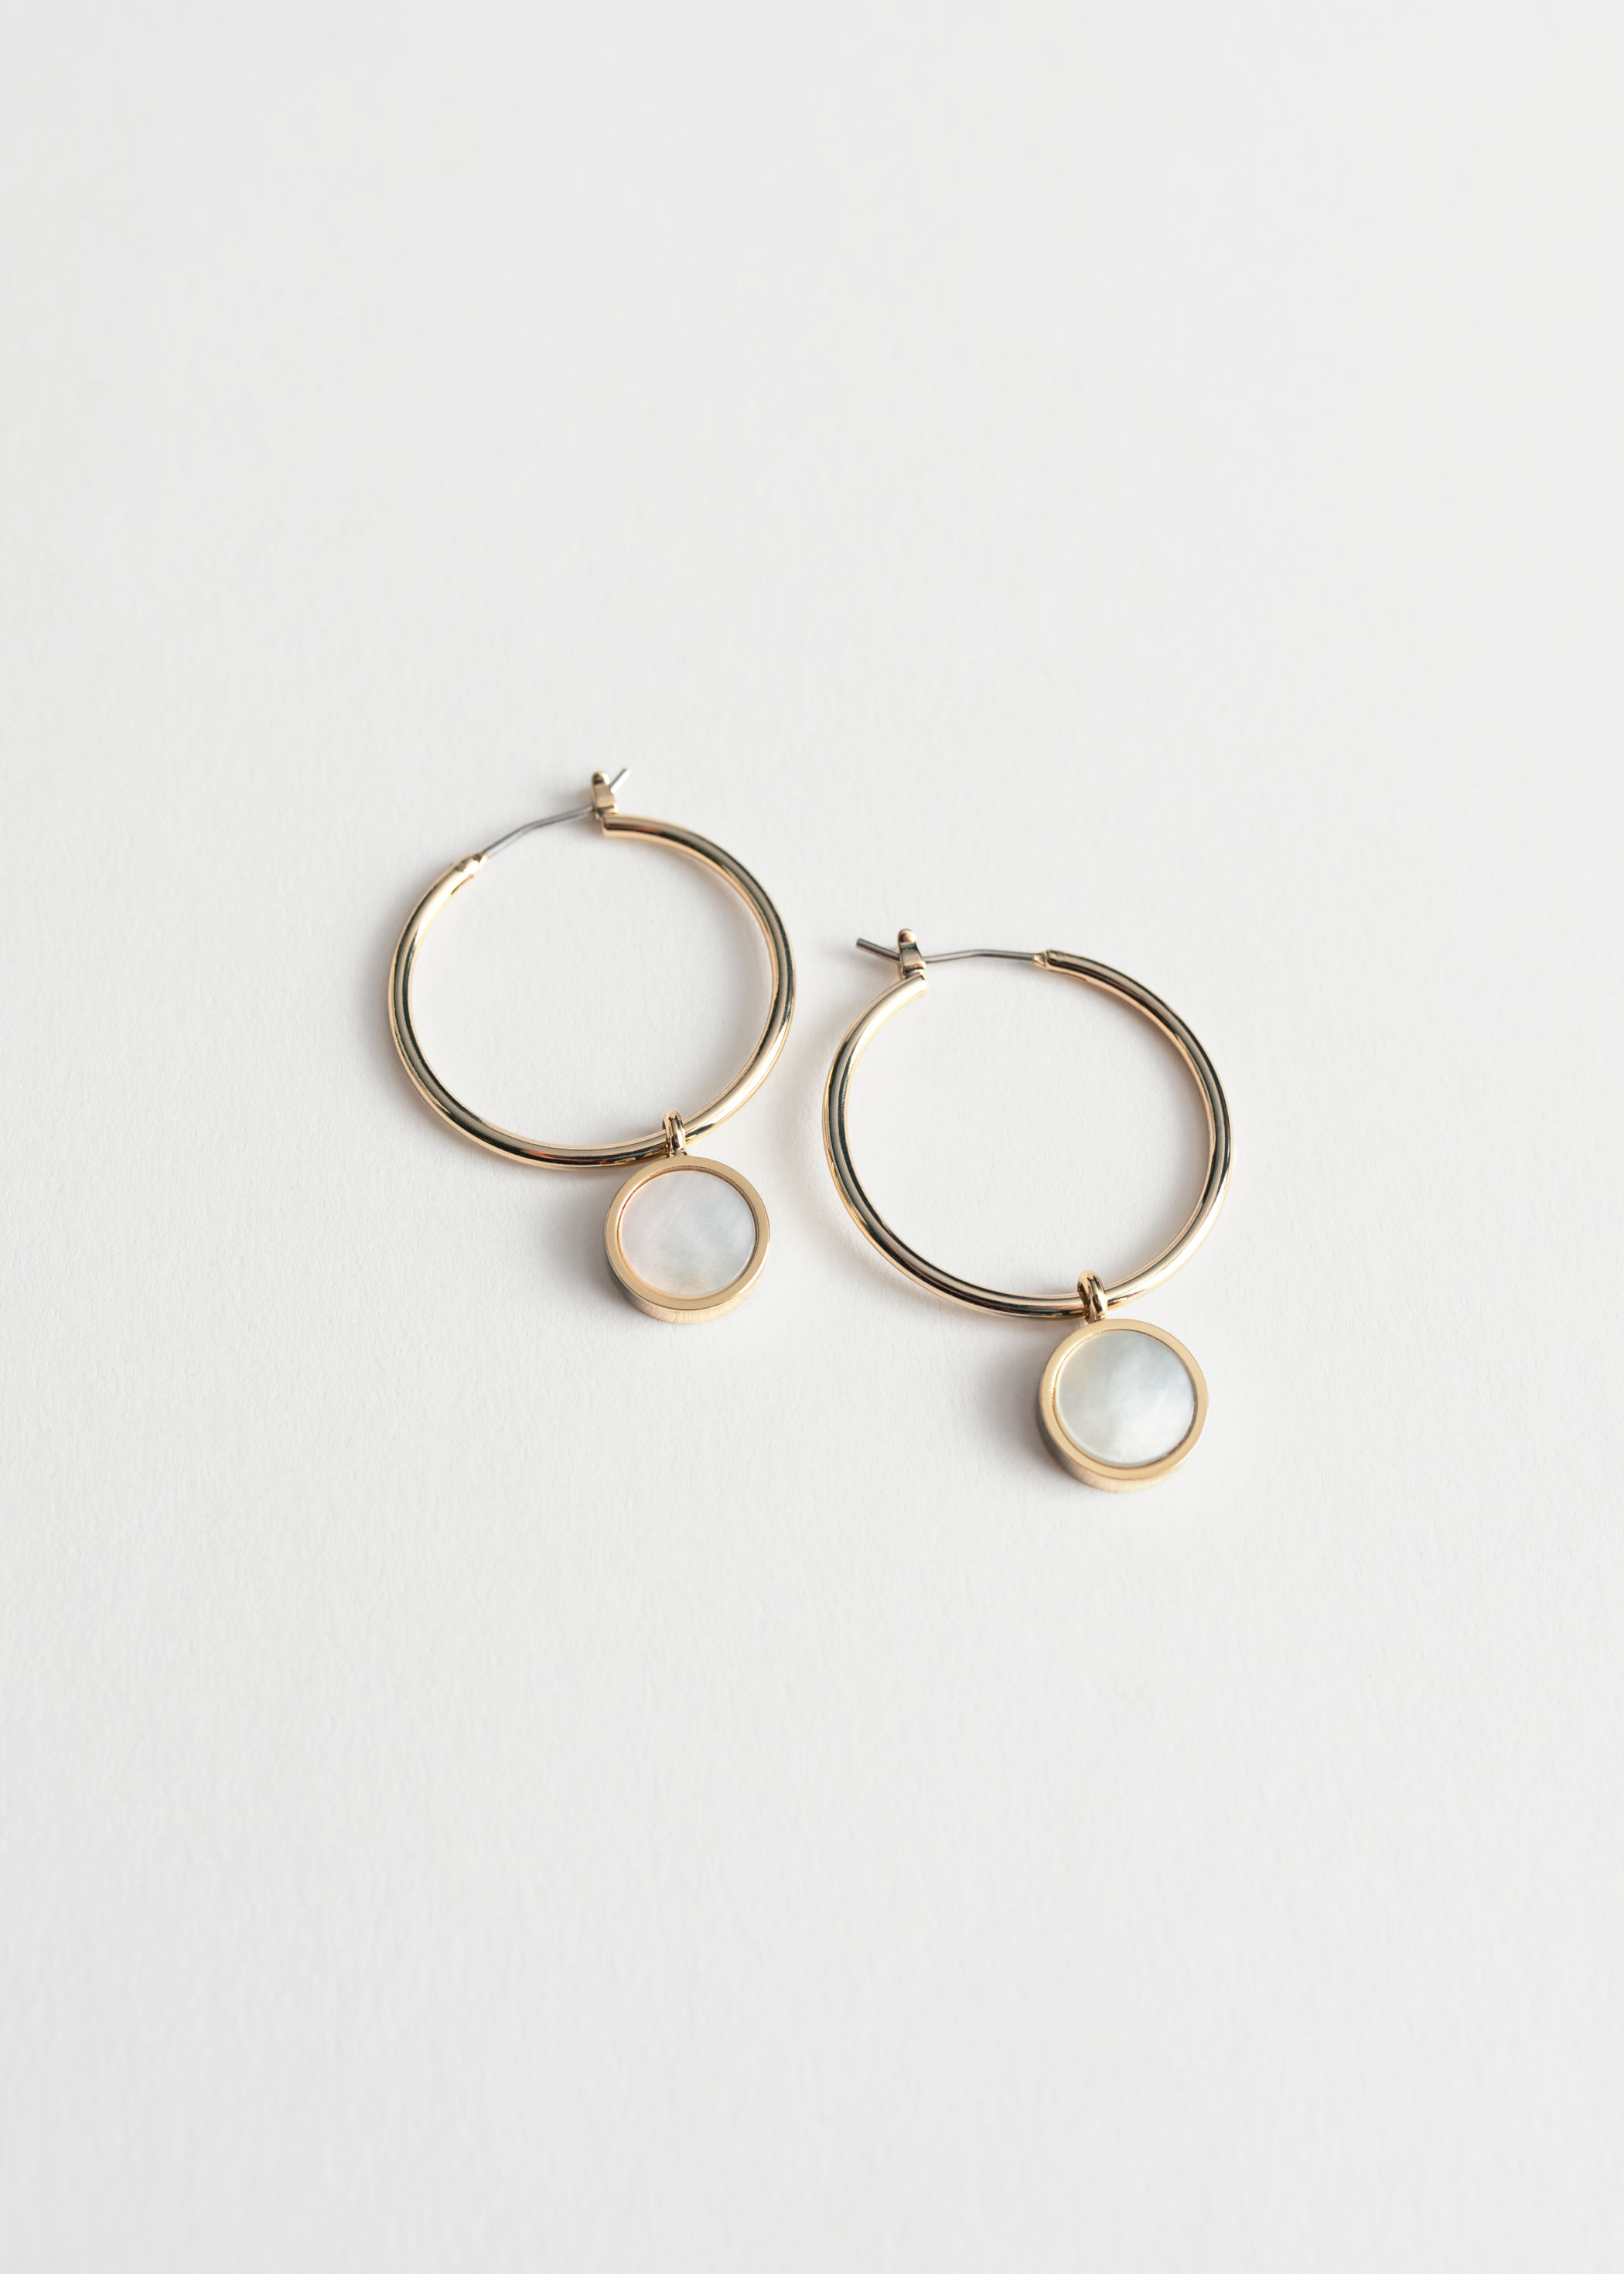 Shell hoop earrings - And Other Stories